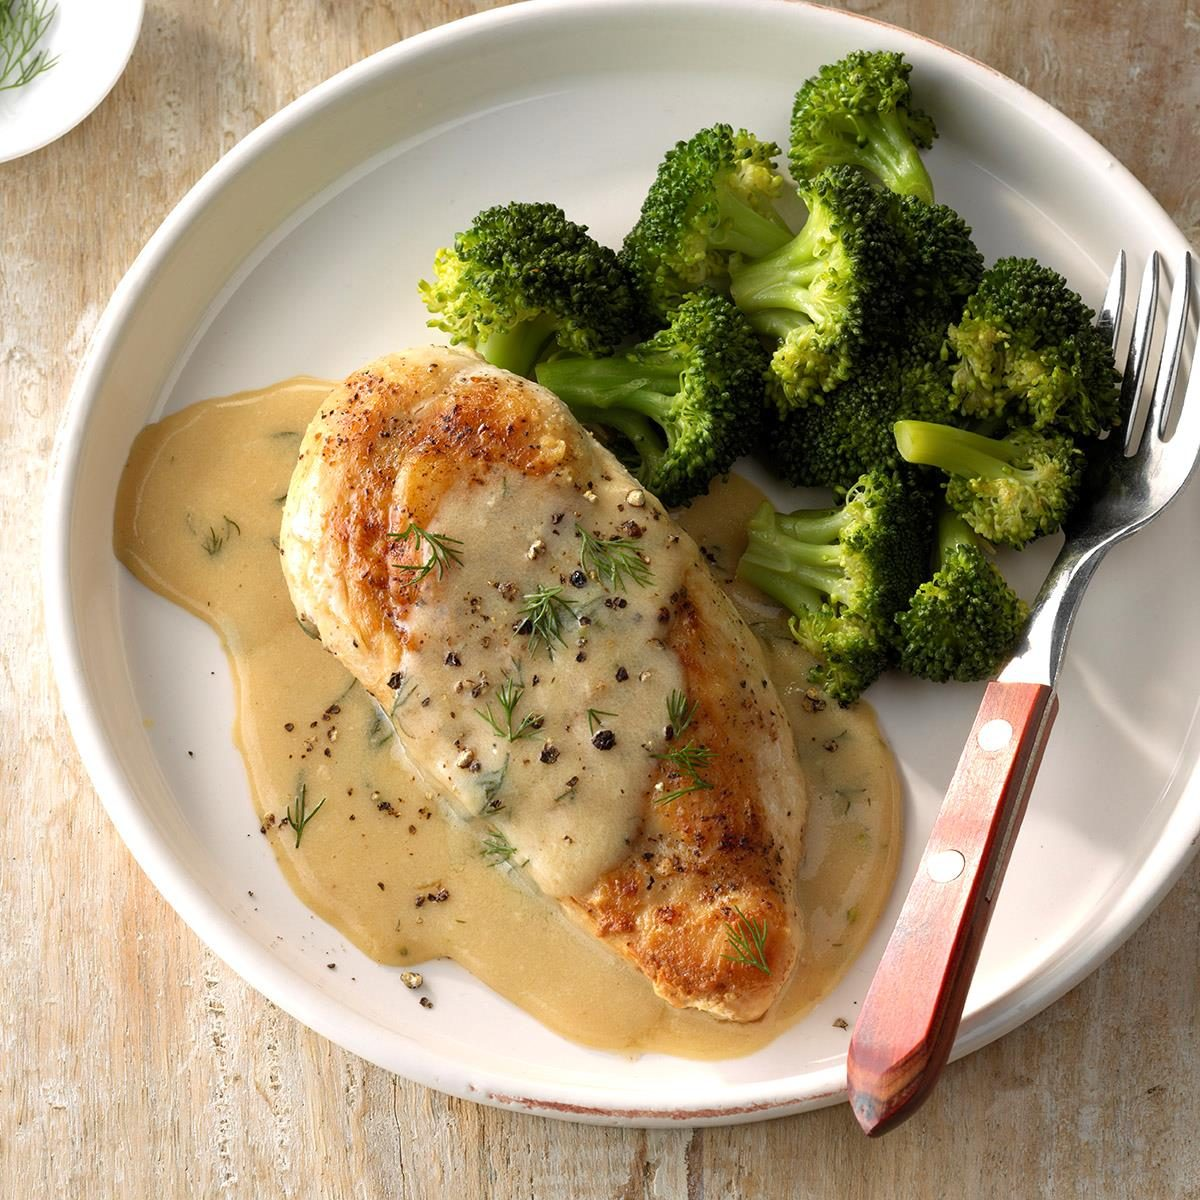 Day 11: Chicken and Broccoli with Dill Sauce